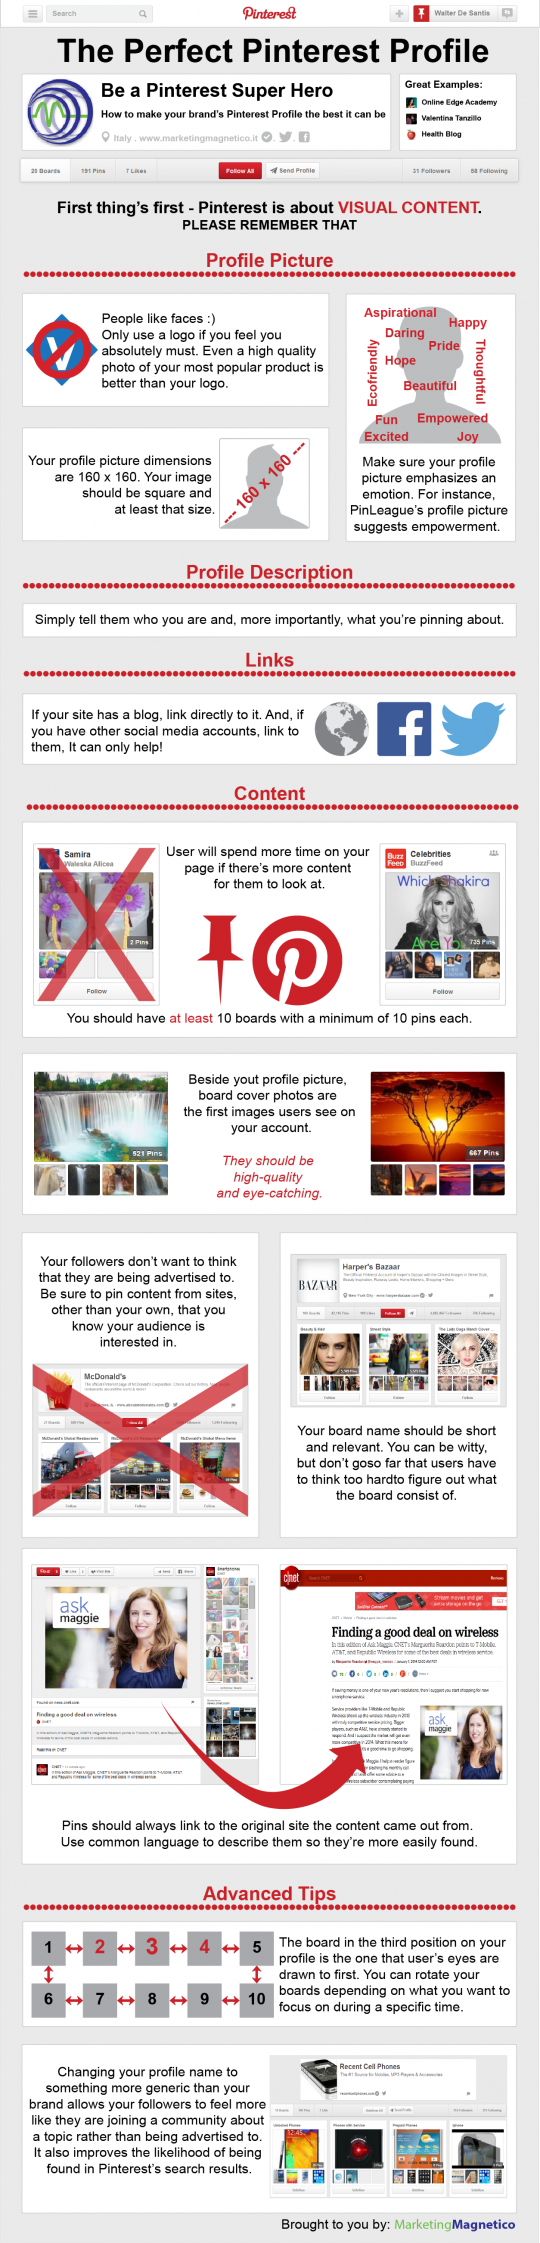 The Perfect Pinterest Profile